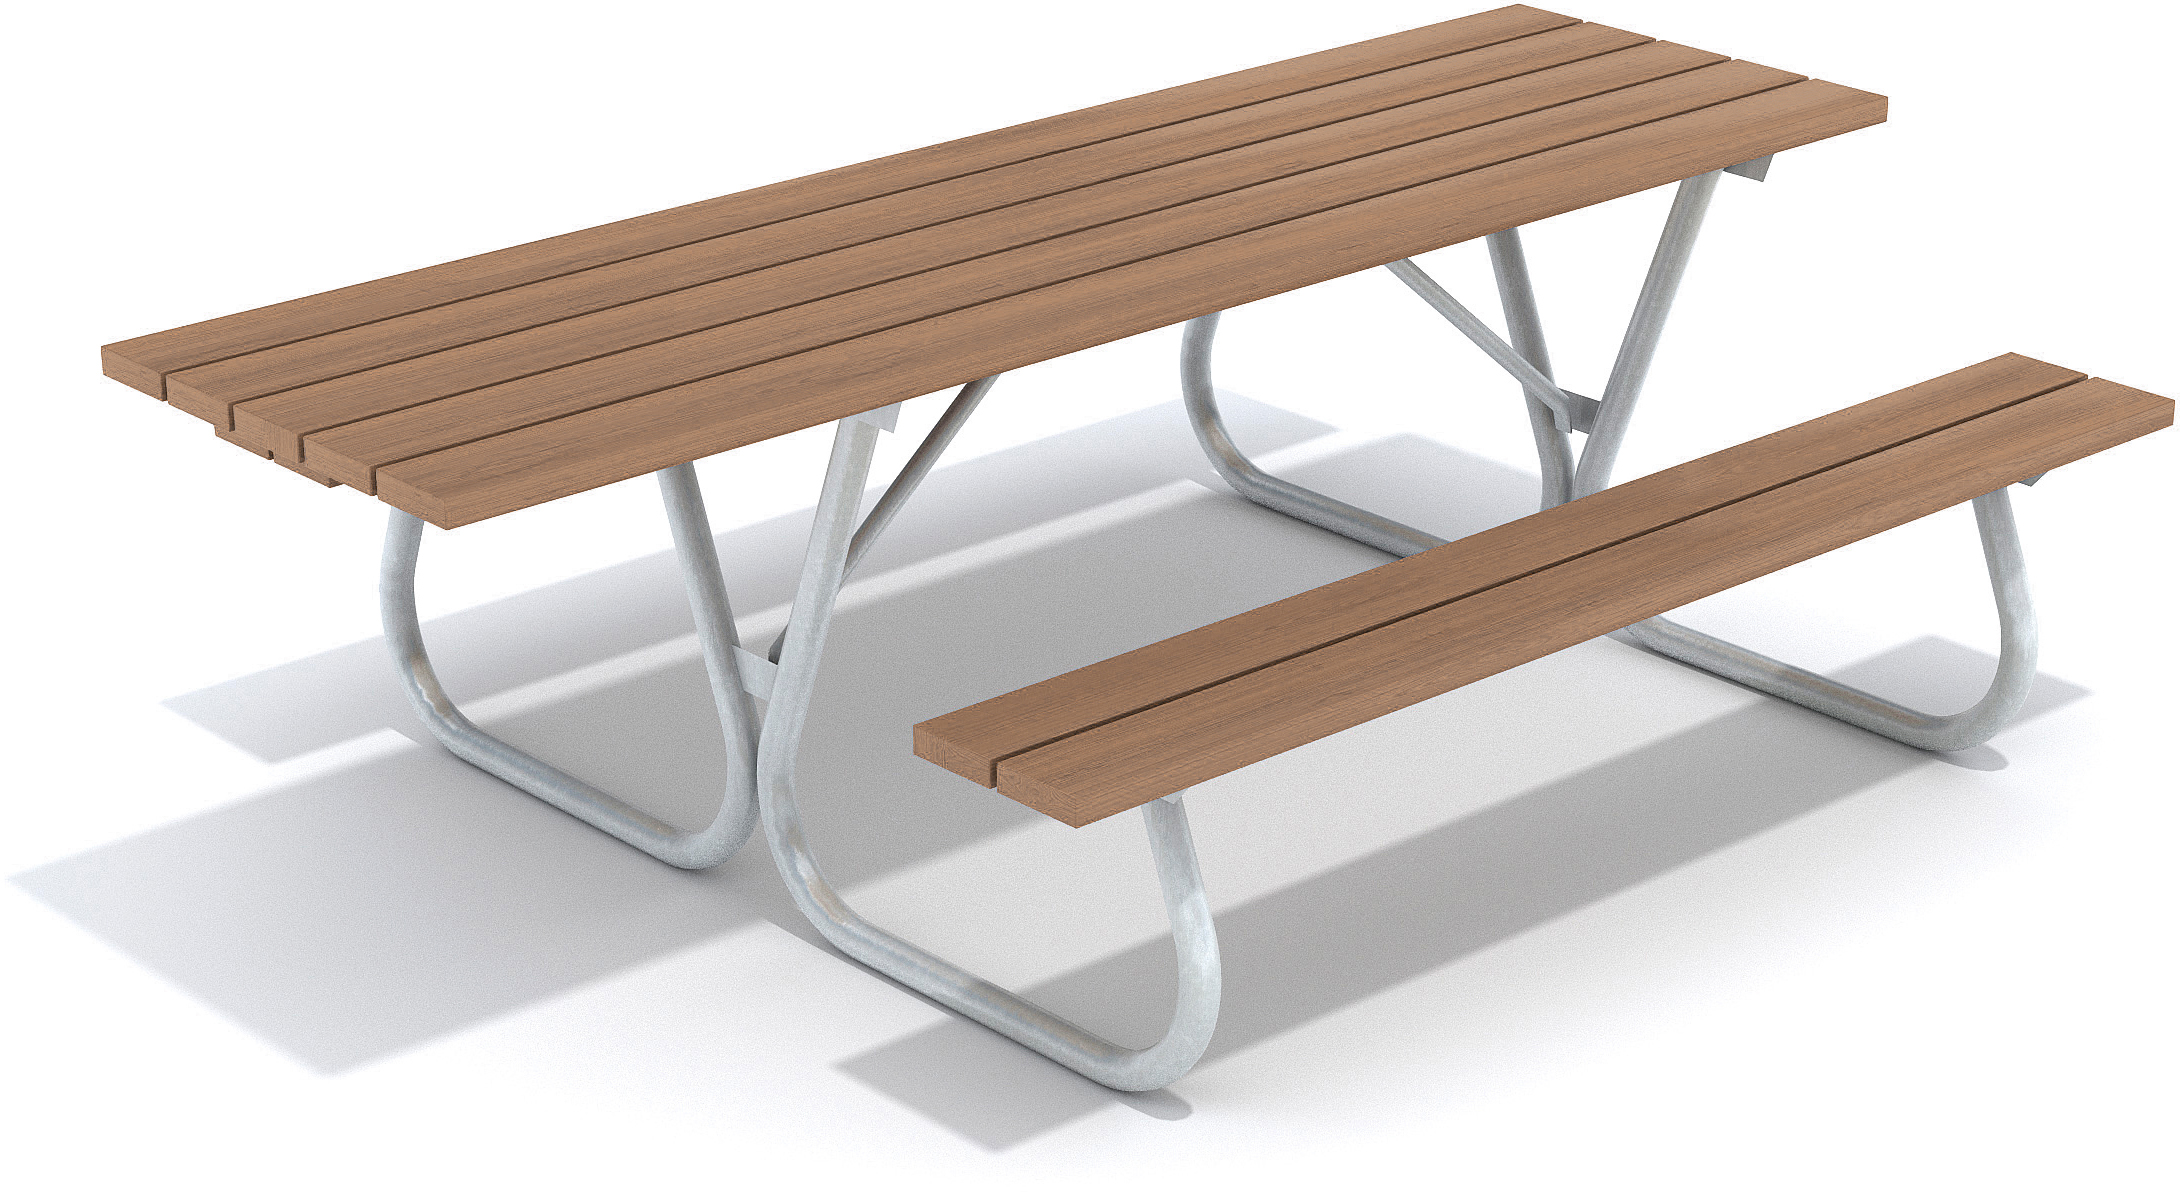 Olvon Picnic Table